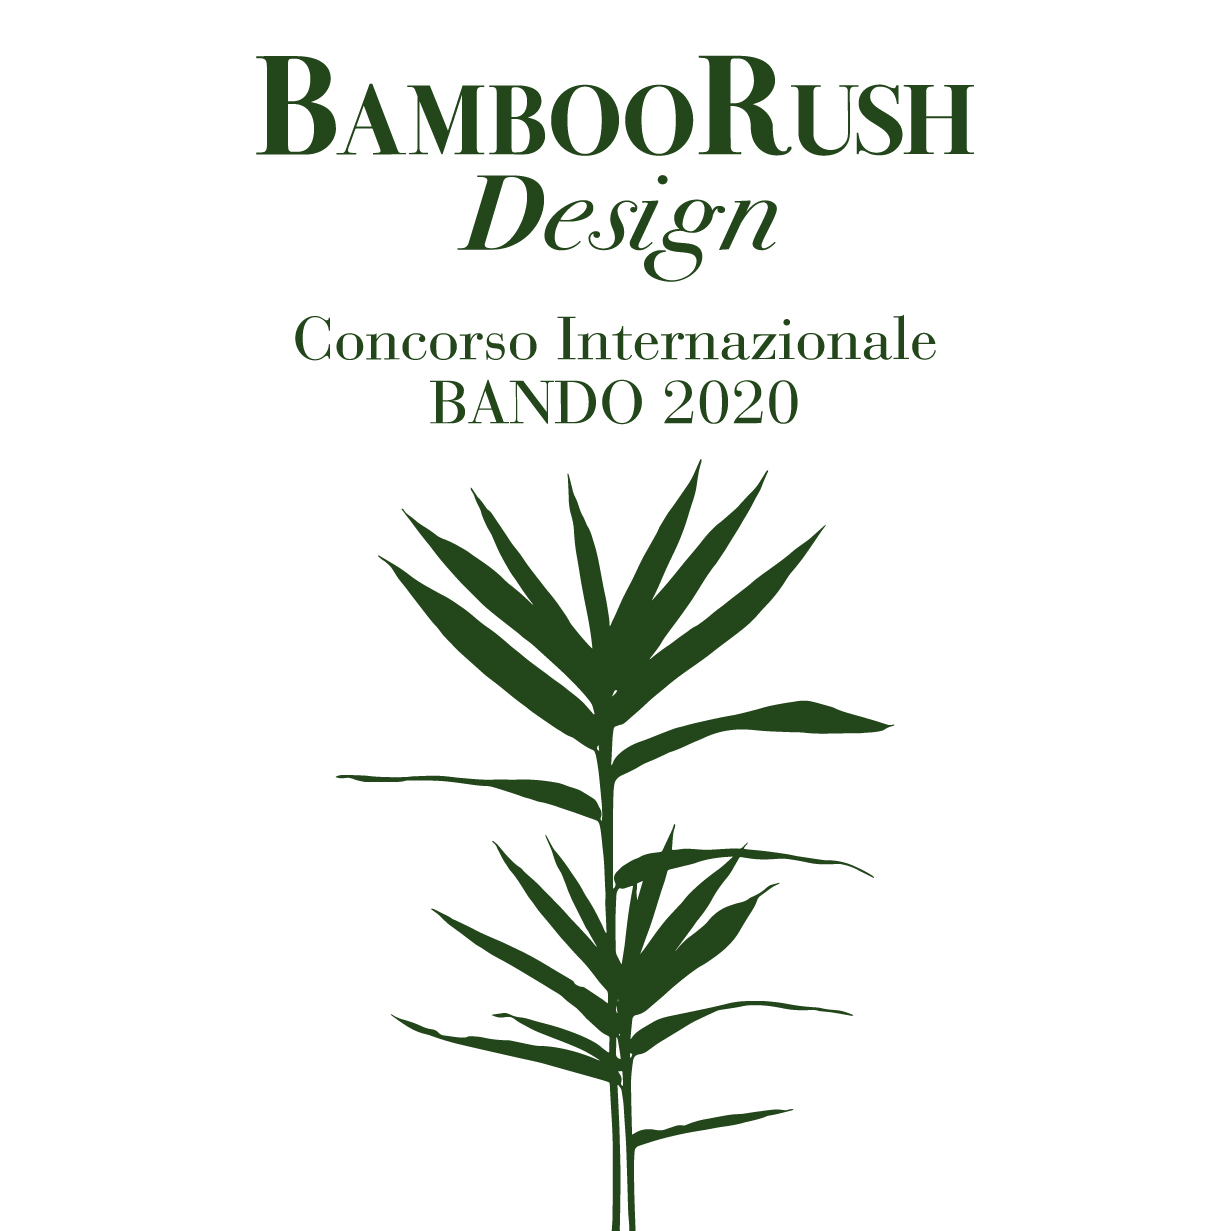 BAMBOO RUSH DESIGN 2020